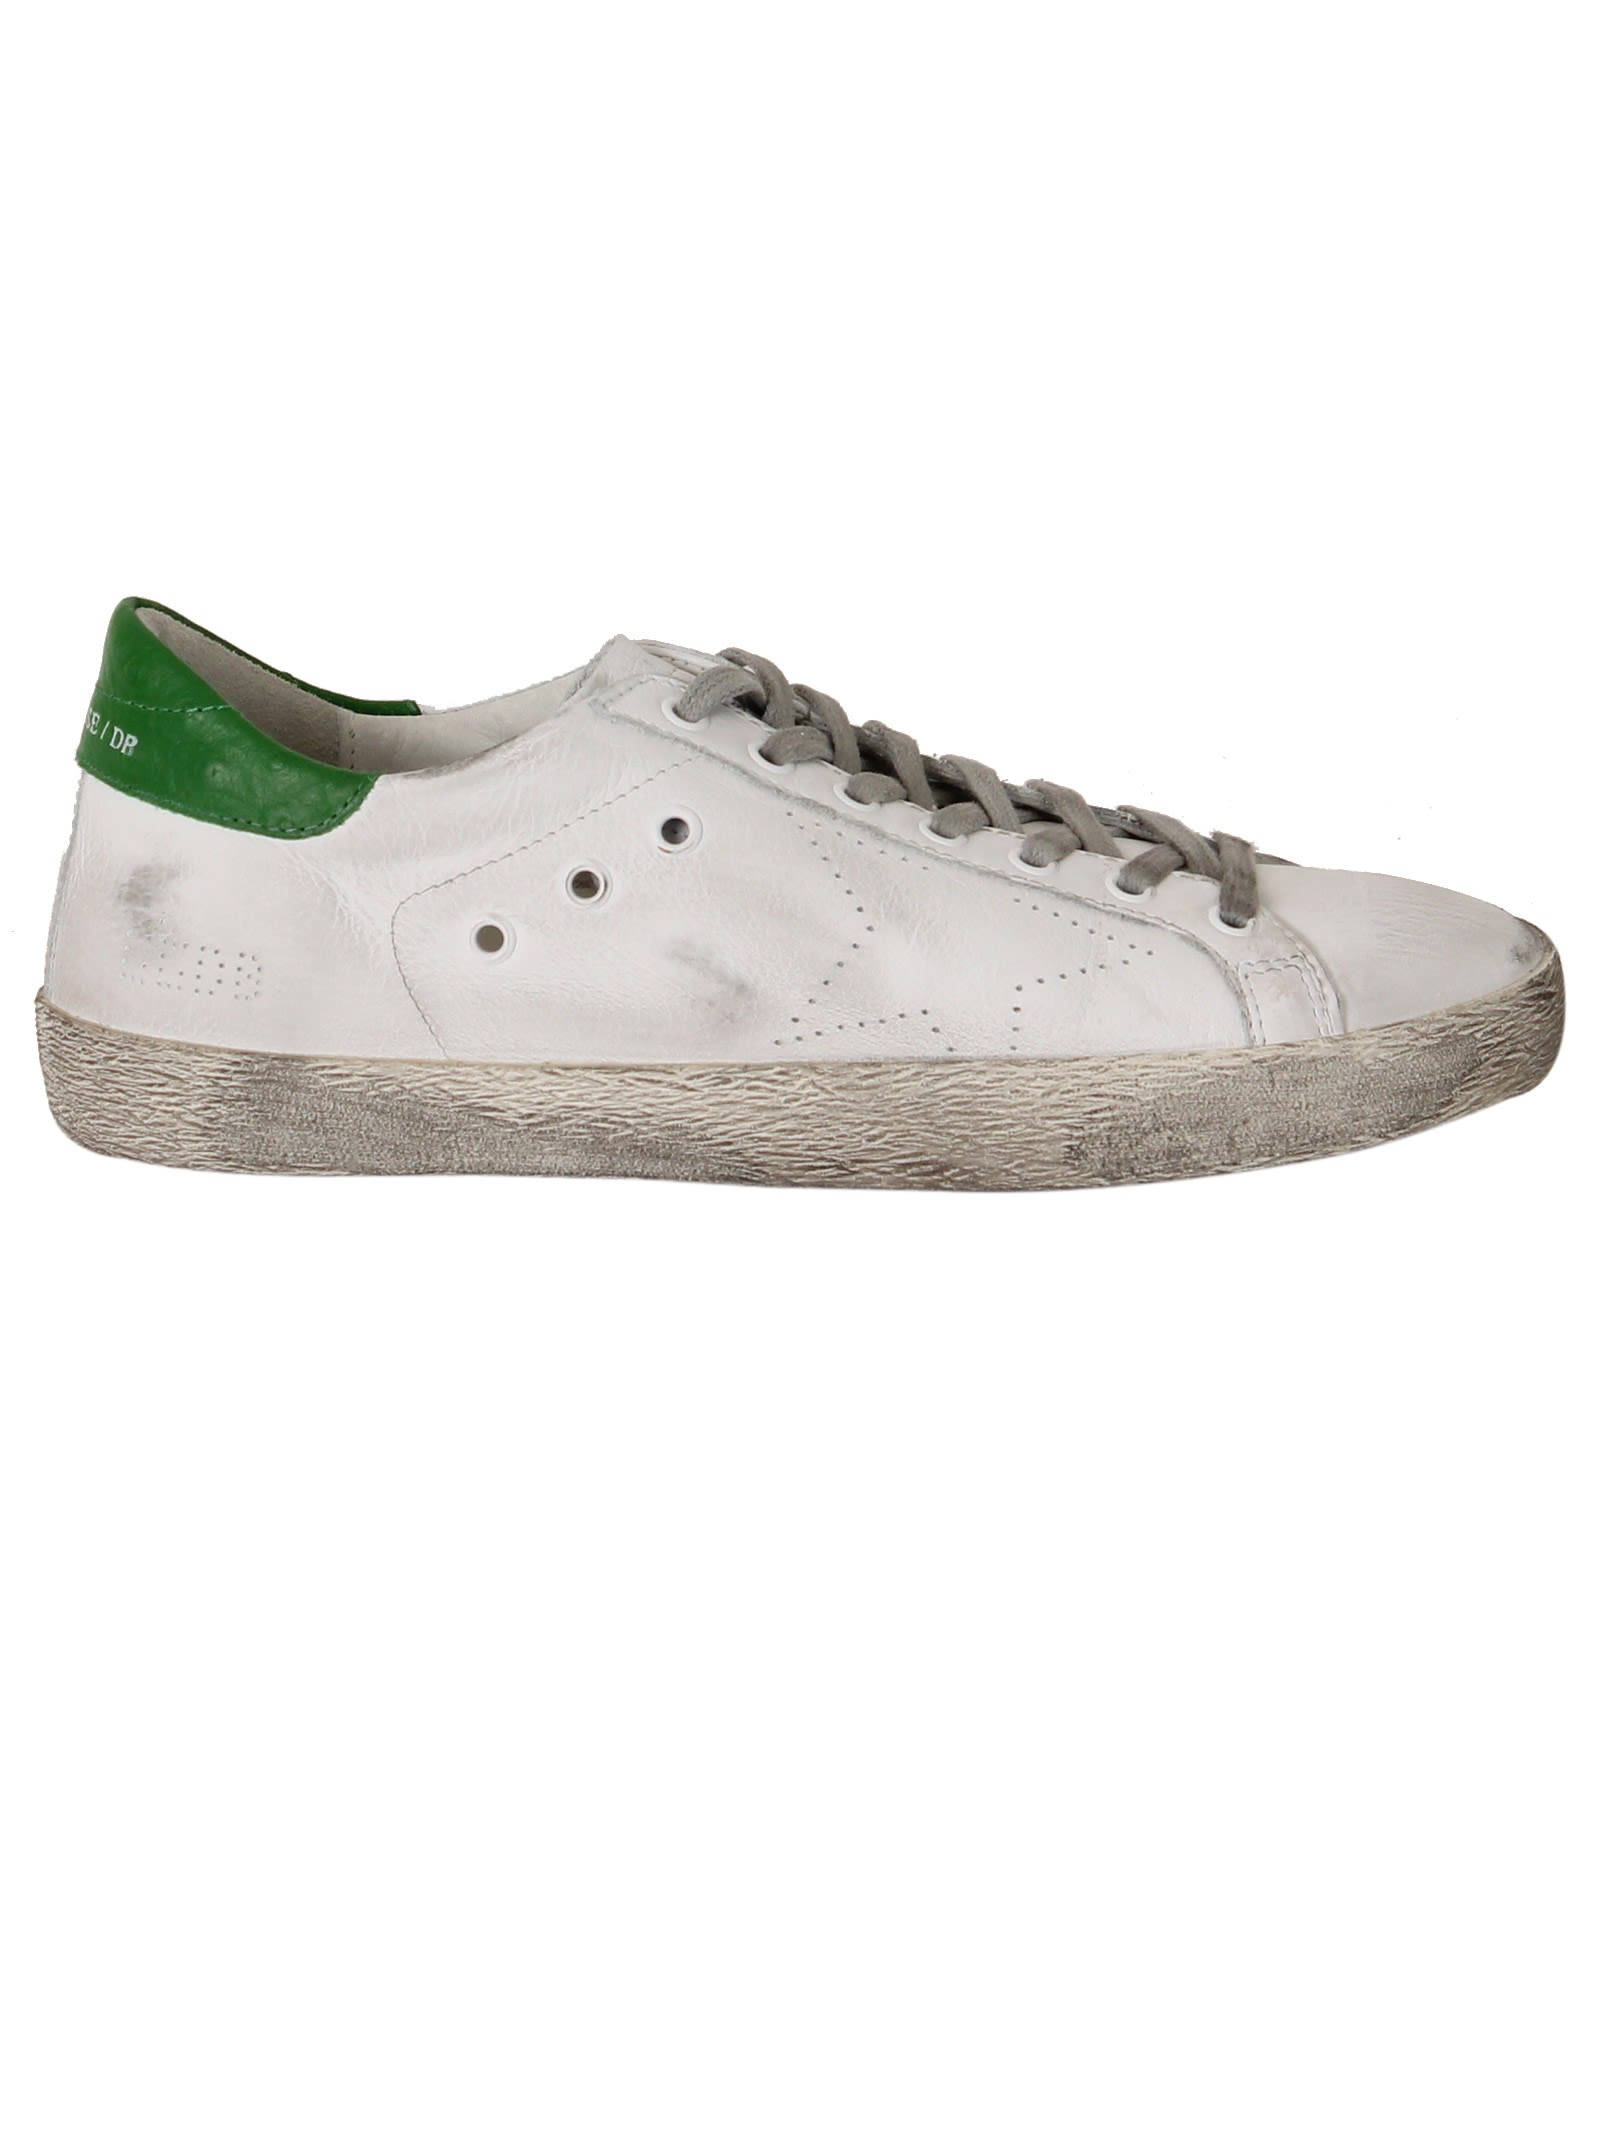 Golden Goose White Green Ostrich Superstar Low Sneakers